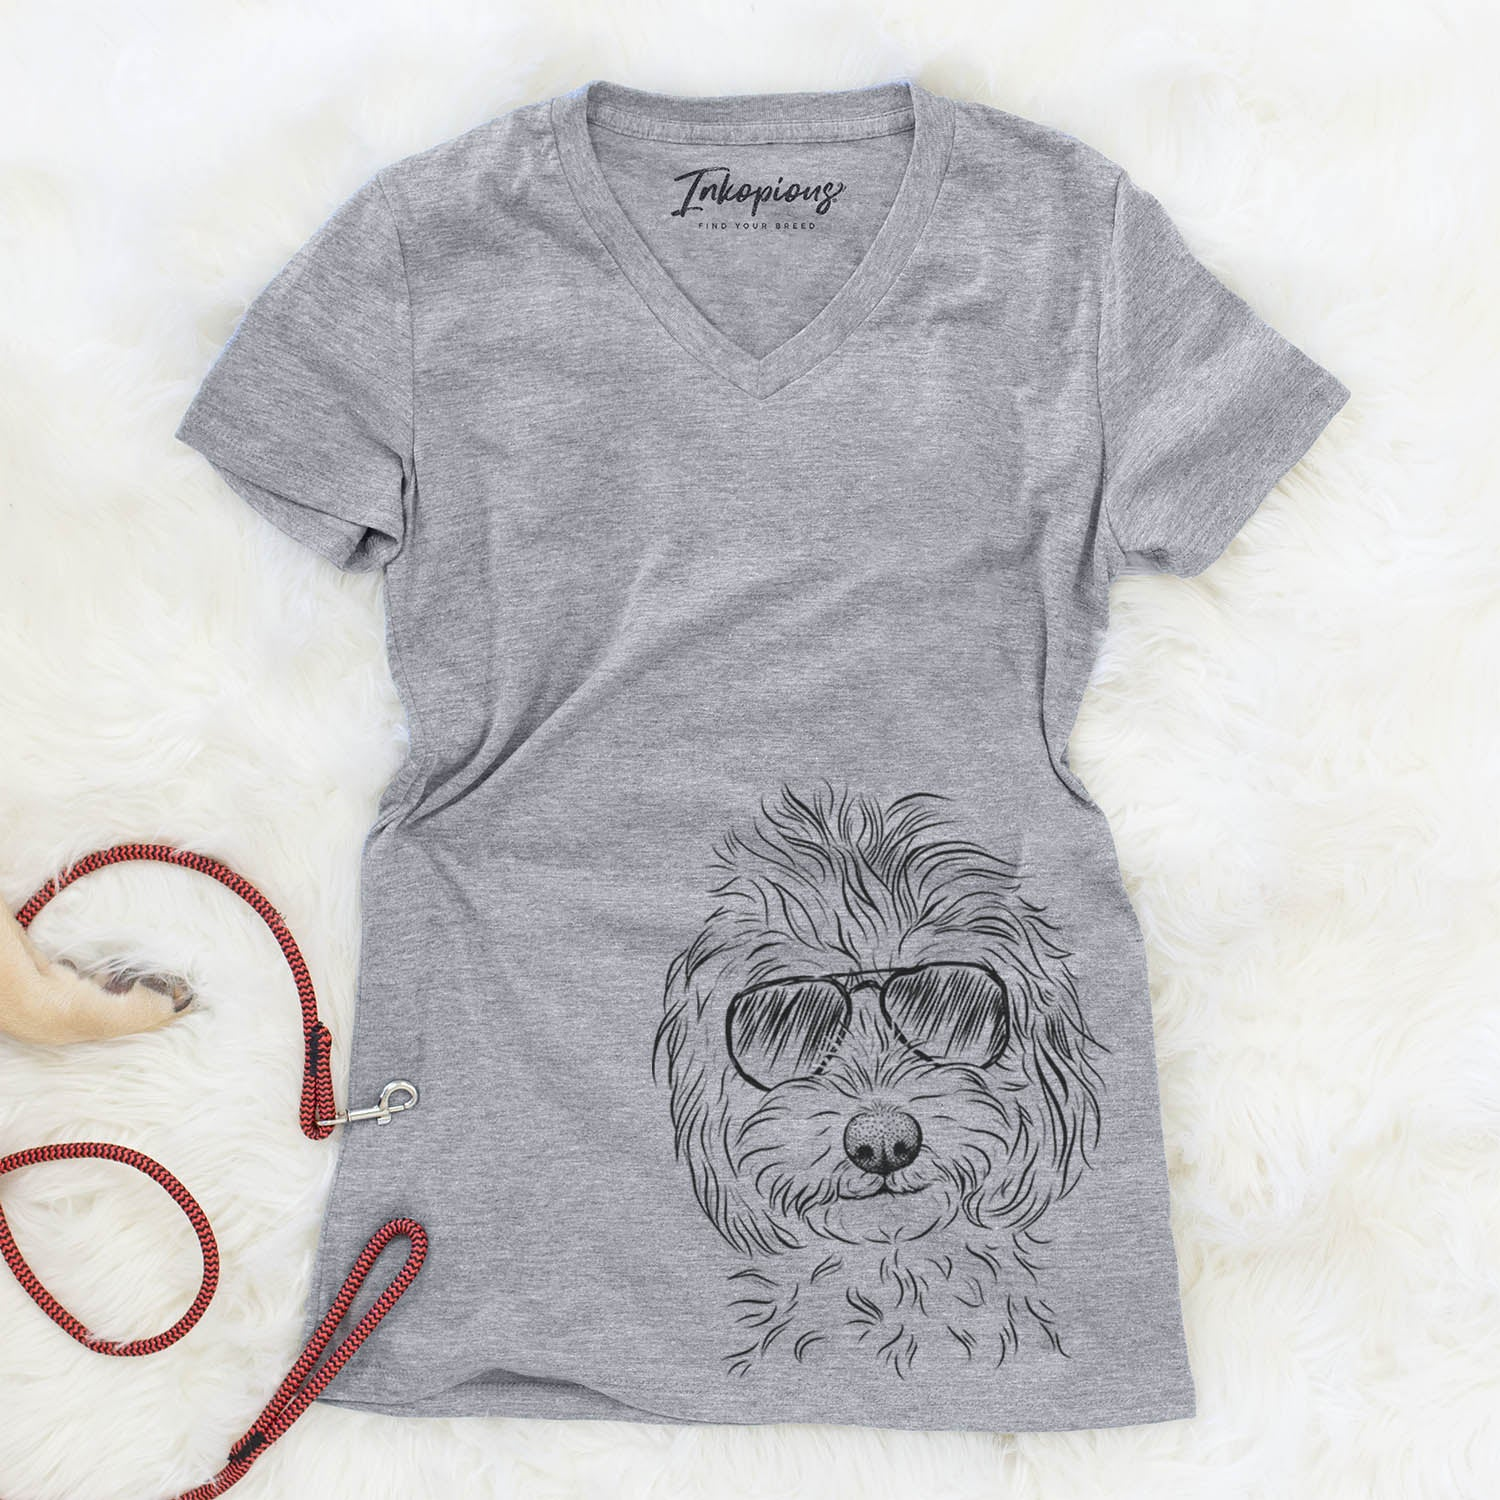 Mason the Cavapoo - Women's Modern Fit V-neck Shirt